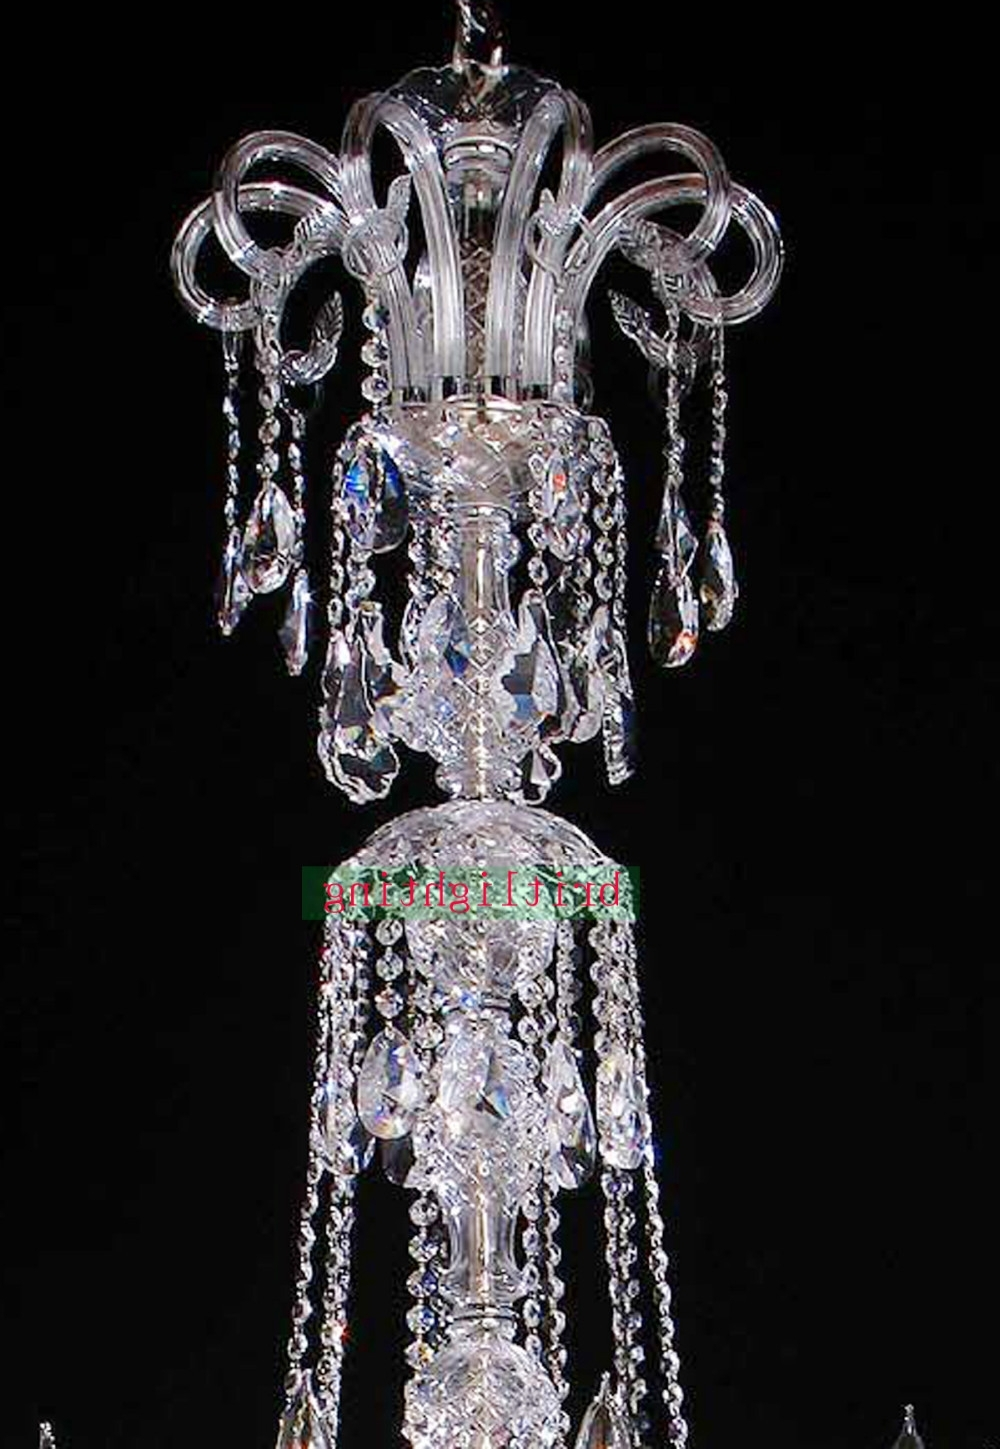 Extra Large Crystal Chandeliers Intended For Best And Newest Lamp Modern Crystal Chandeliers 5 Star Hotel Chandelier Led Crystal (View 14 of 15)